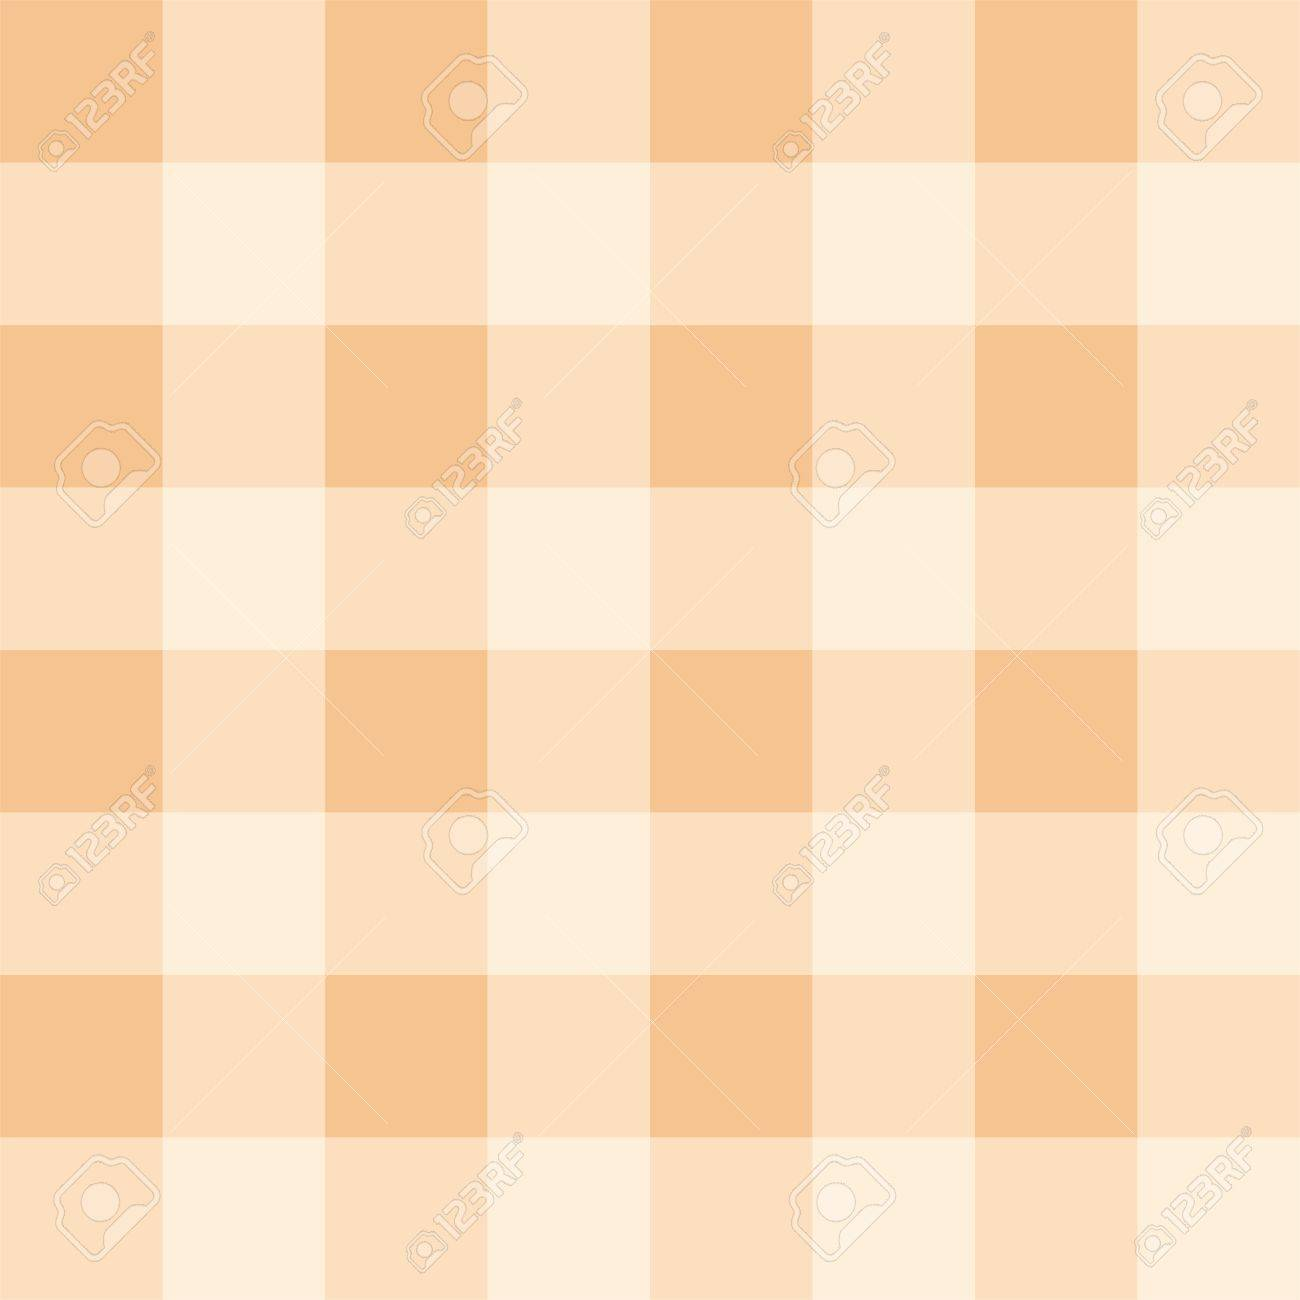 Seamless Light Beige Vector Background - Checkered Pattern Or ... for Light Background Patterns For Websites  186ref